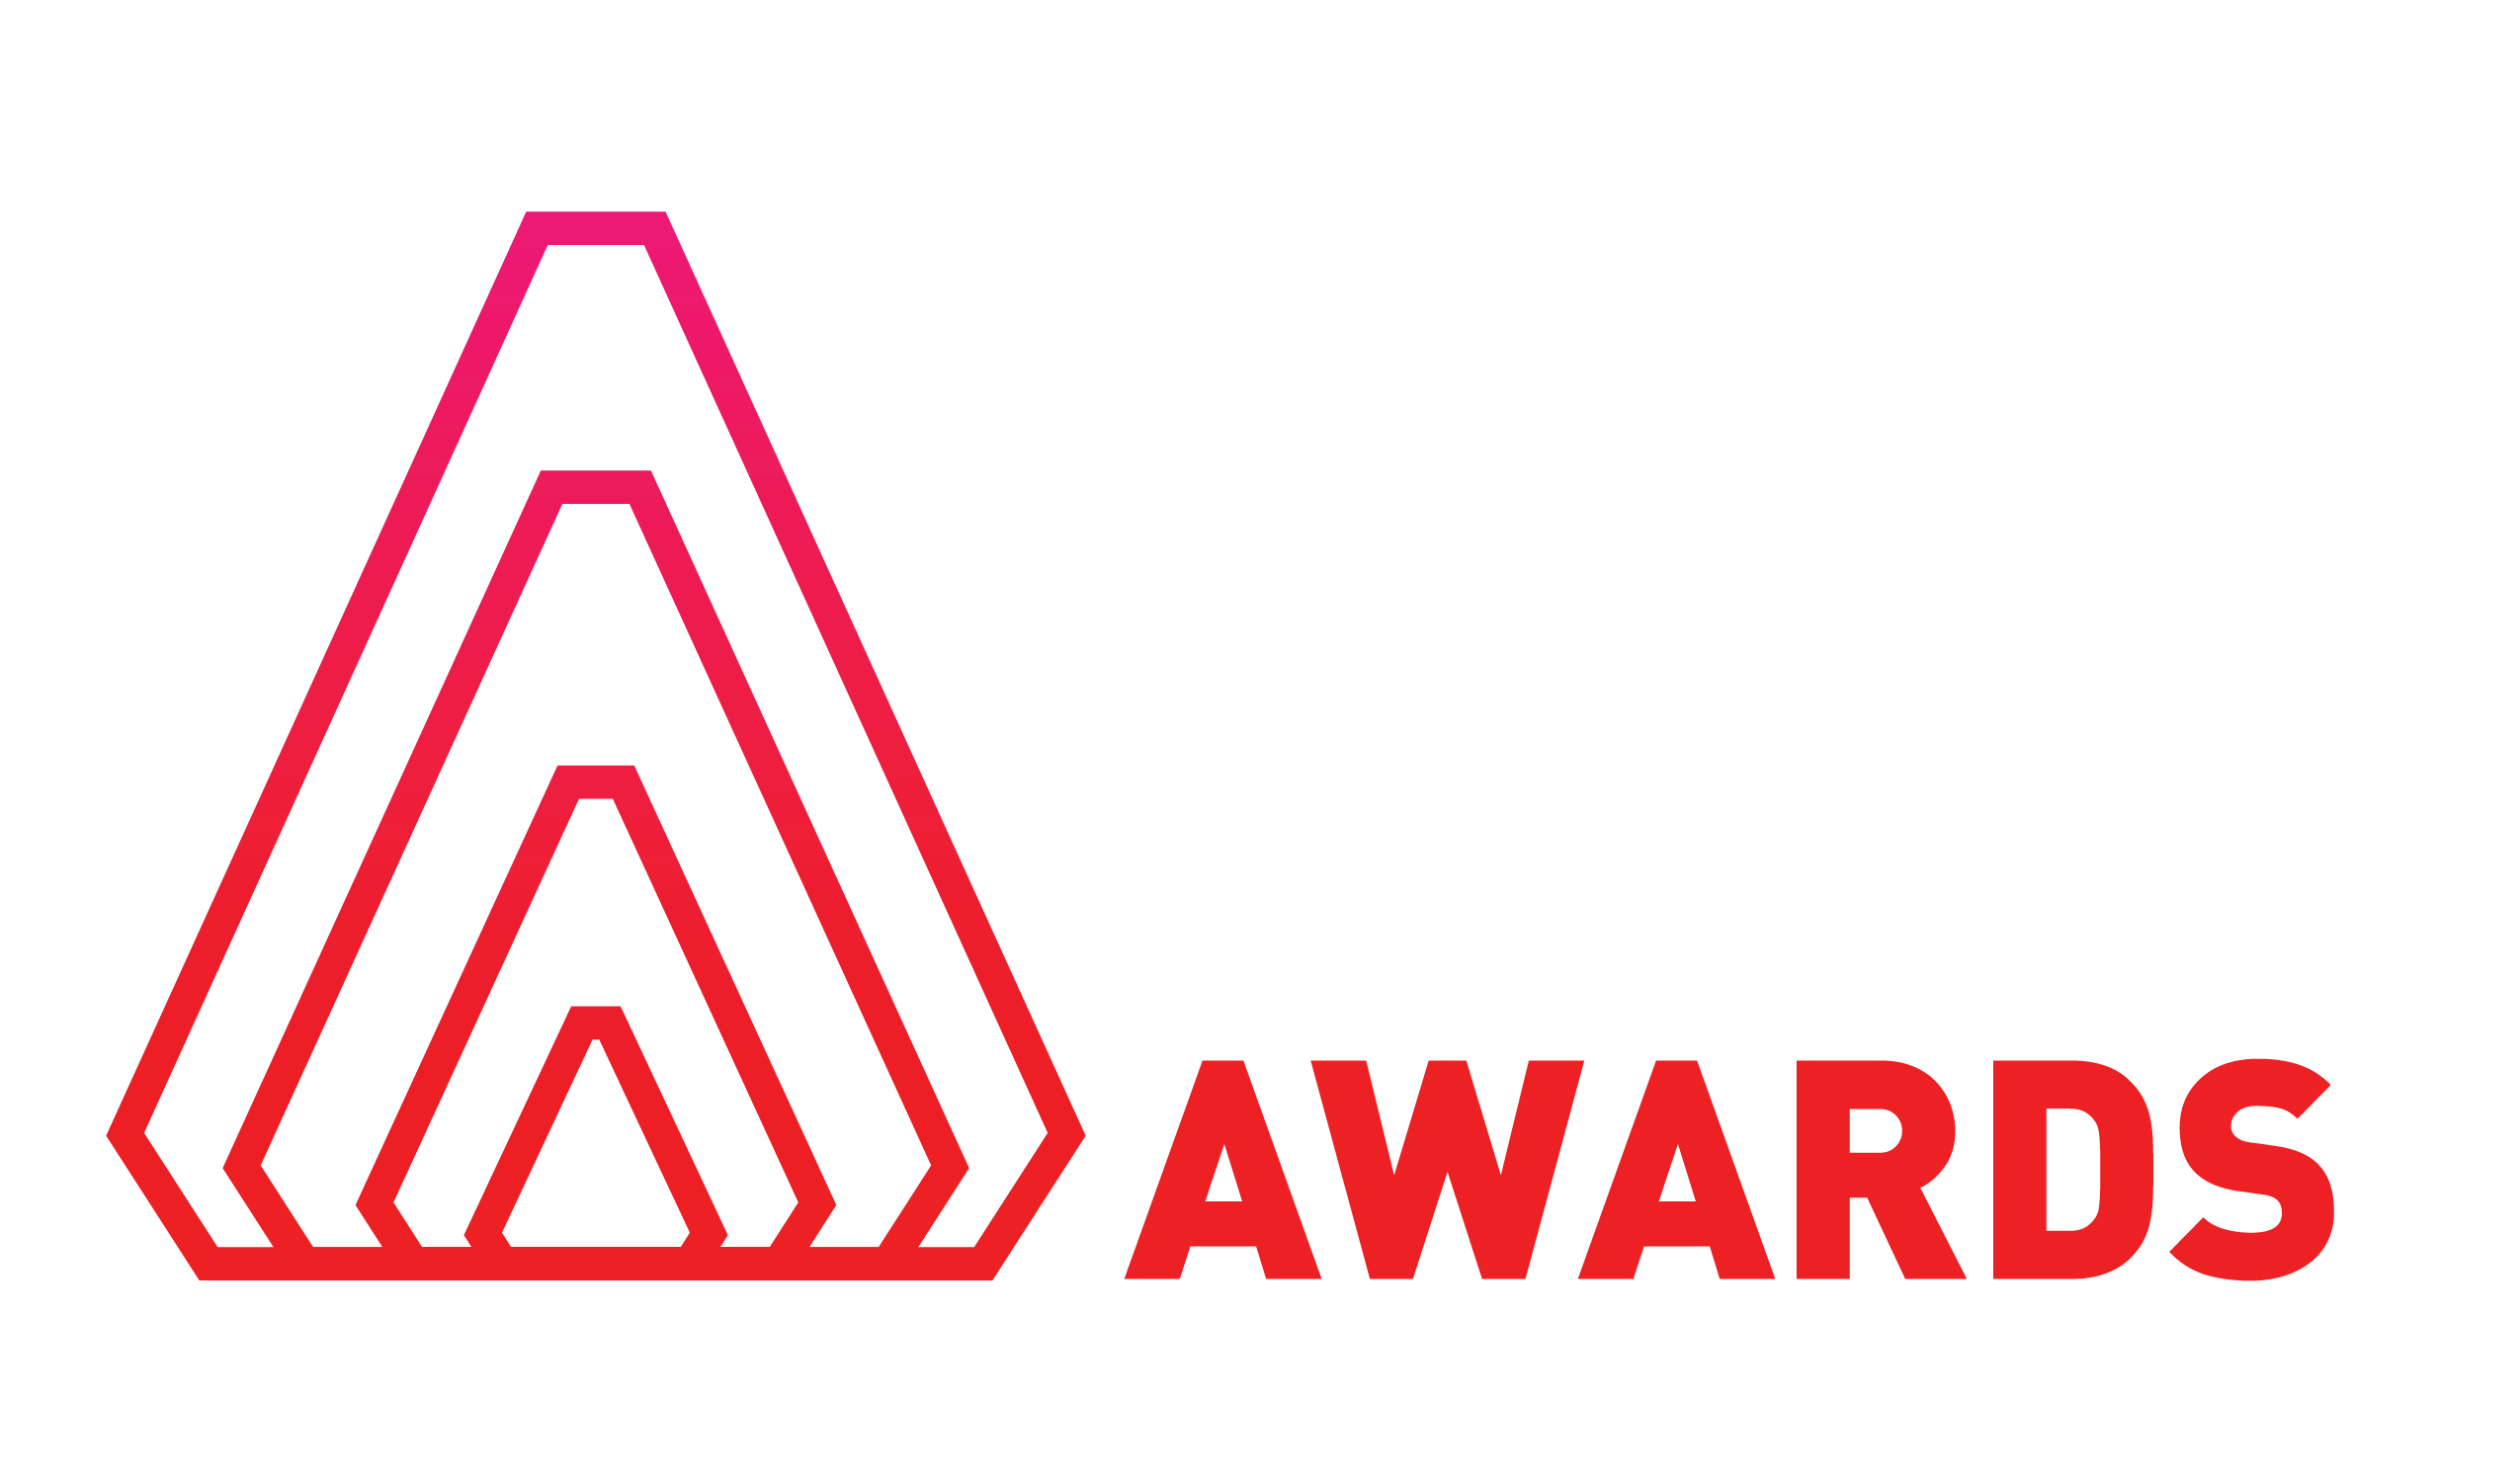 Games For Change Awards